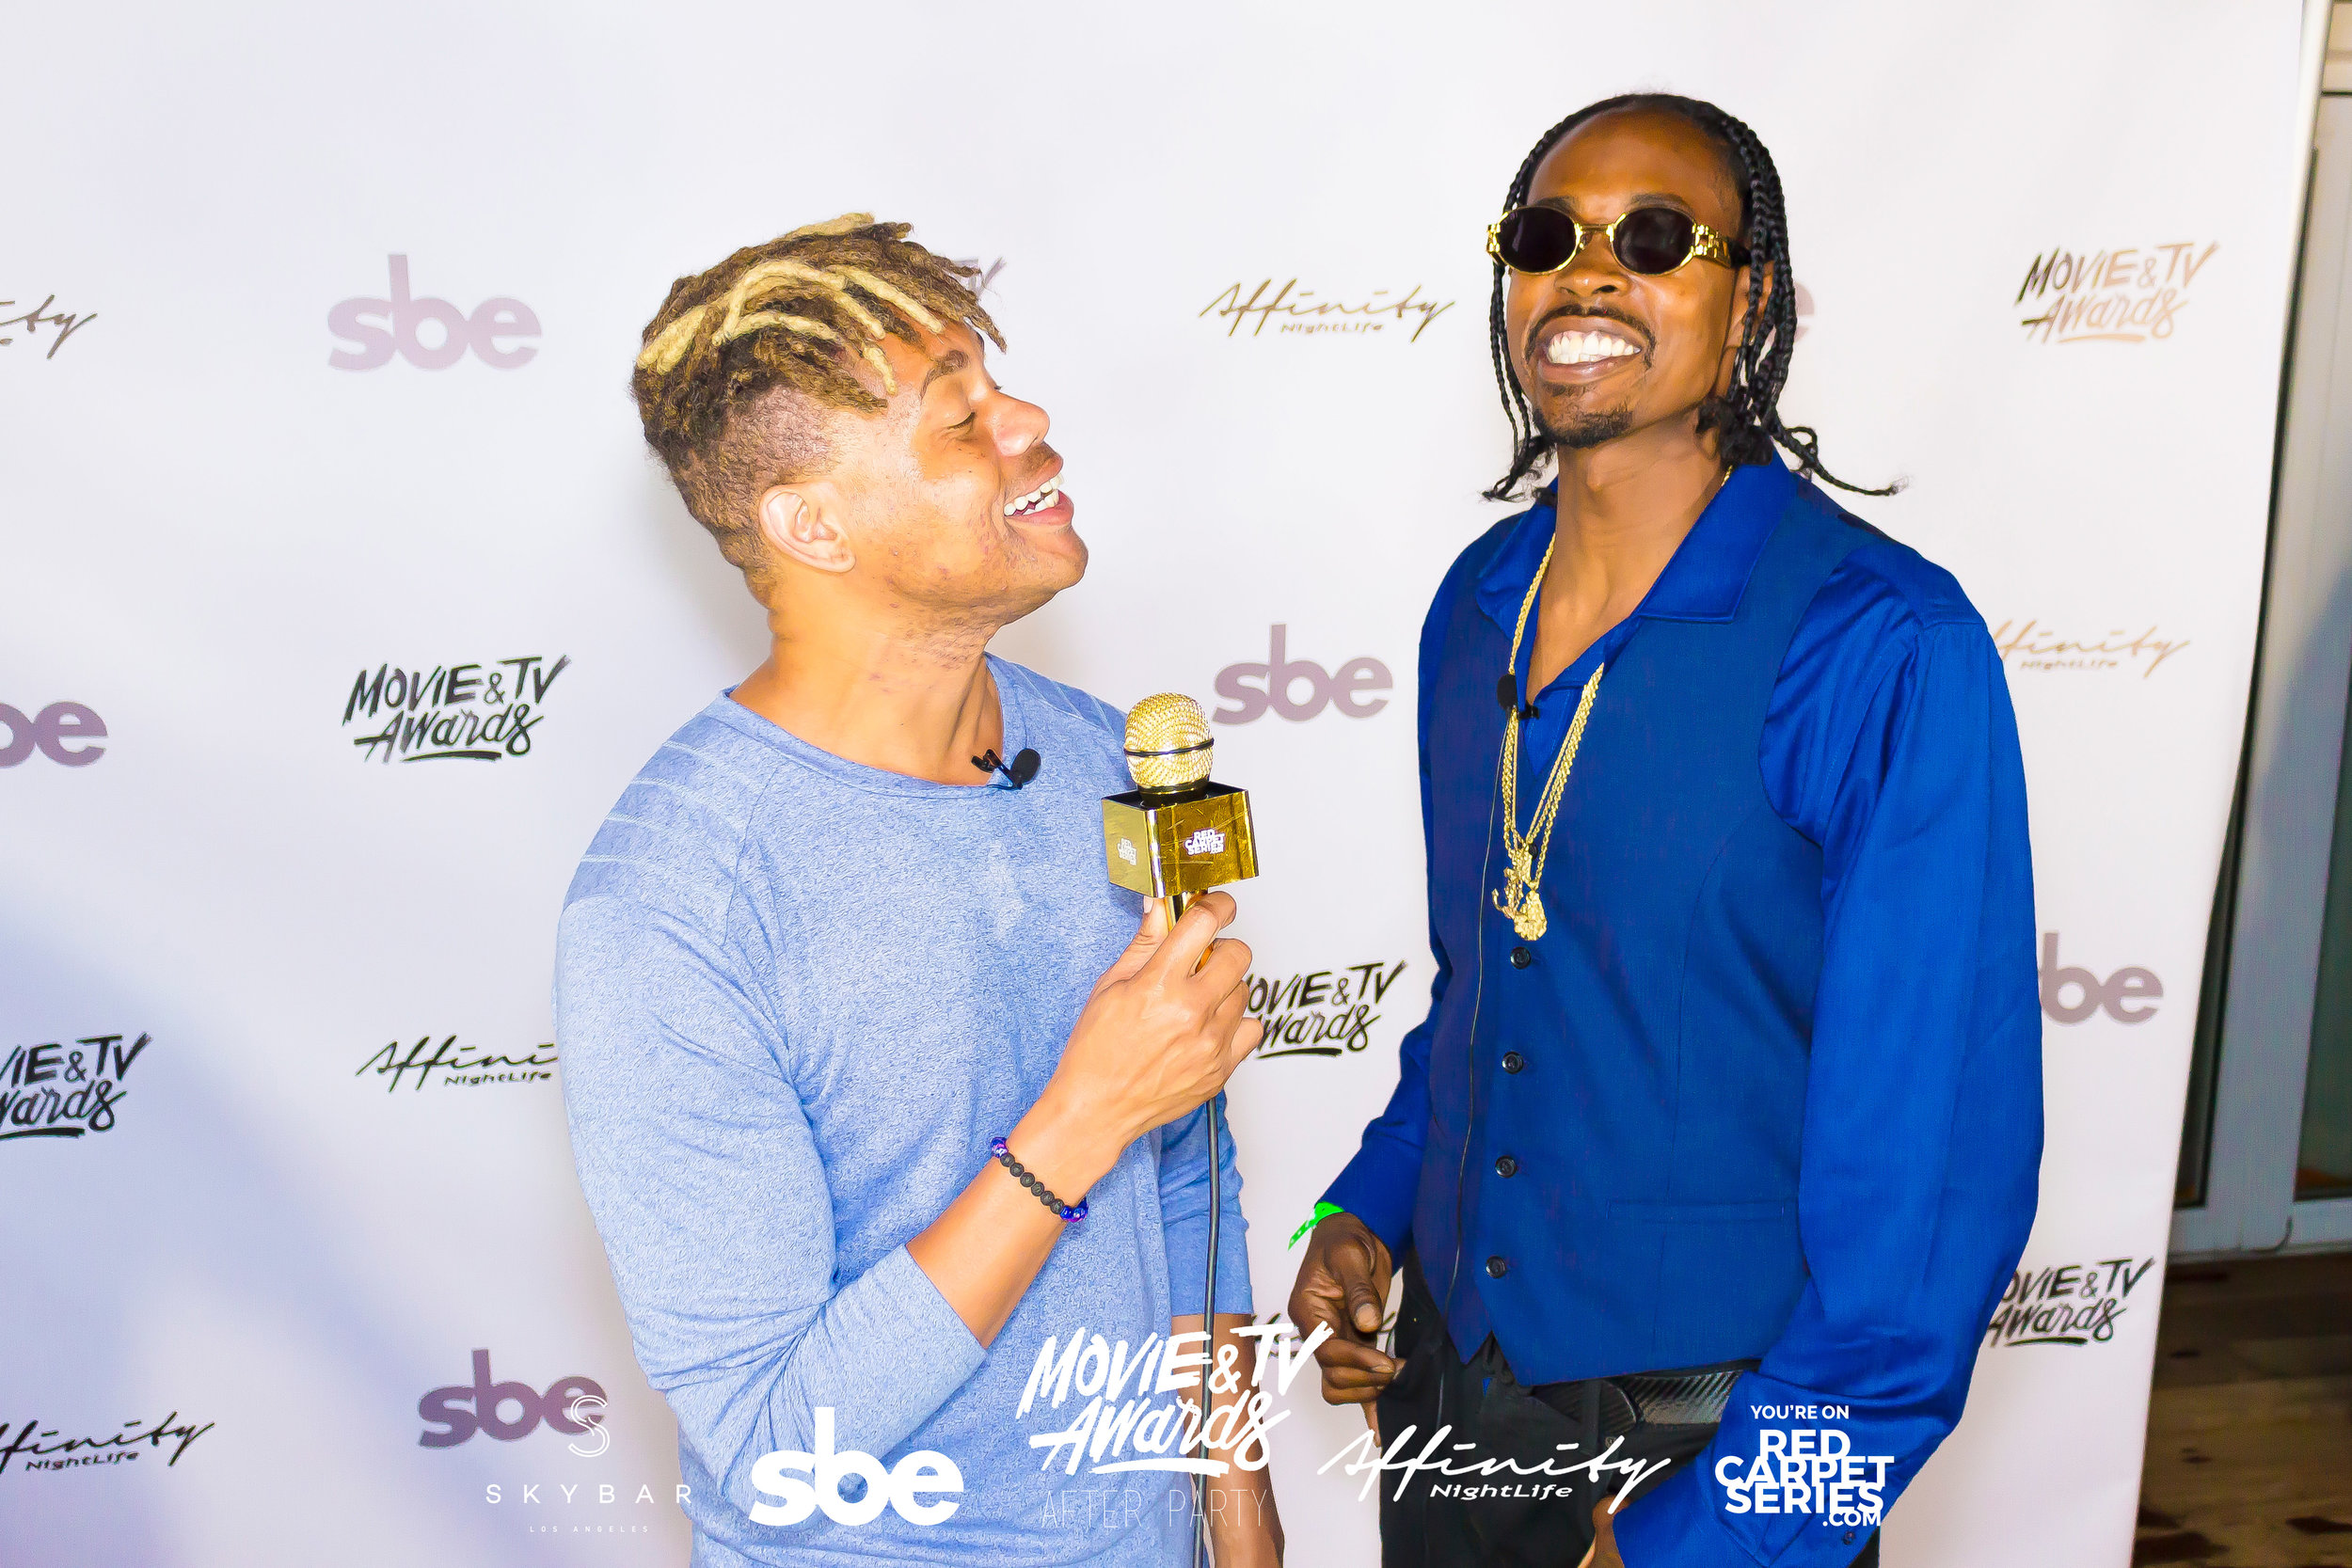 Affinity Nightlife MTV Movie & TV Awards After Party - Skybar at Mondrian - 06-15-19 - Vol. 1_102.jpg